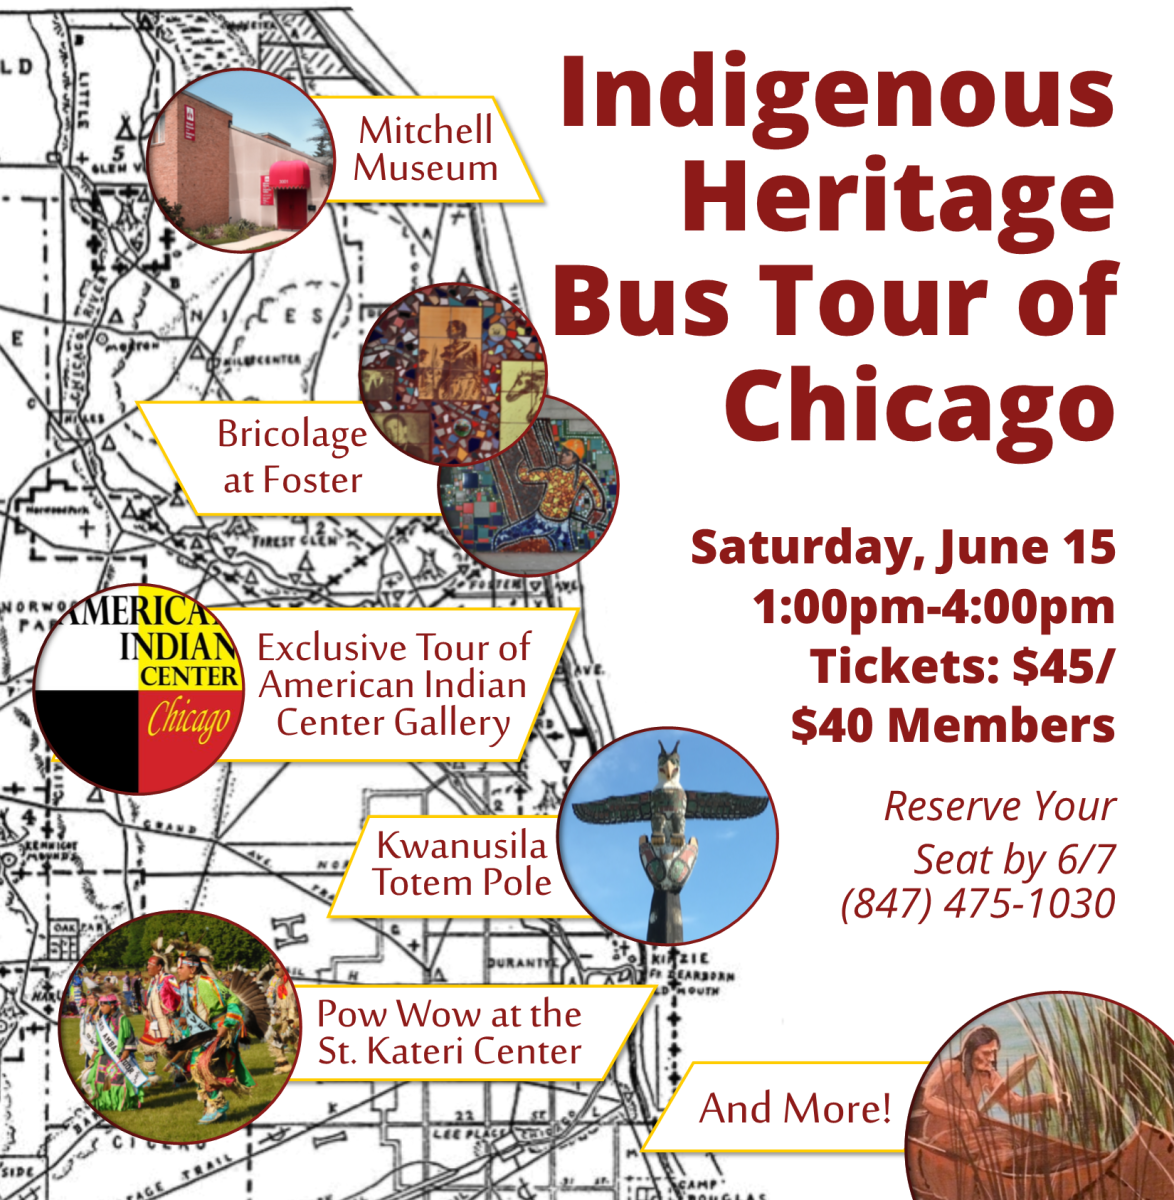 Mitchell Museum of the American Indian Indigenous Heritage Bus Tour of Chicago June 15, 2019 - flyer